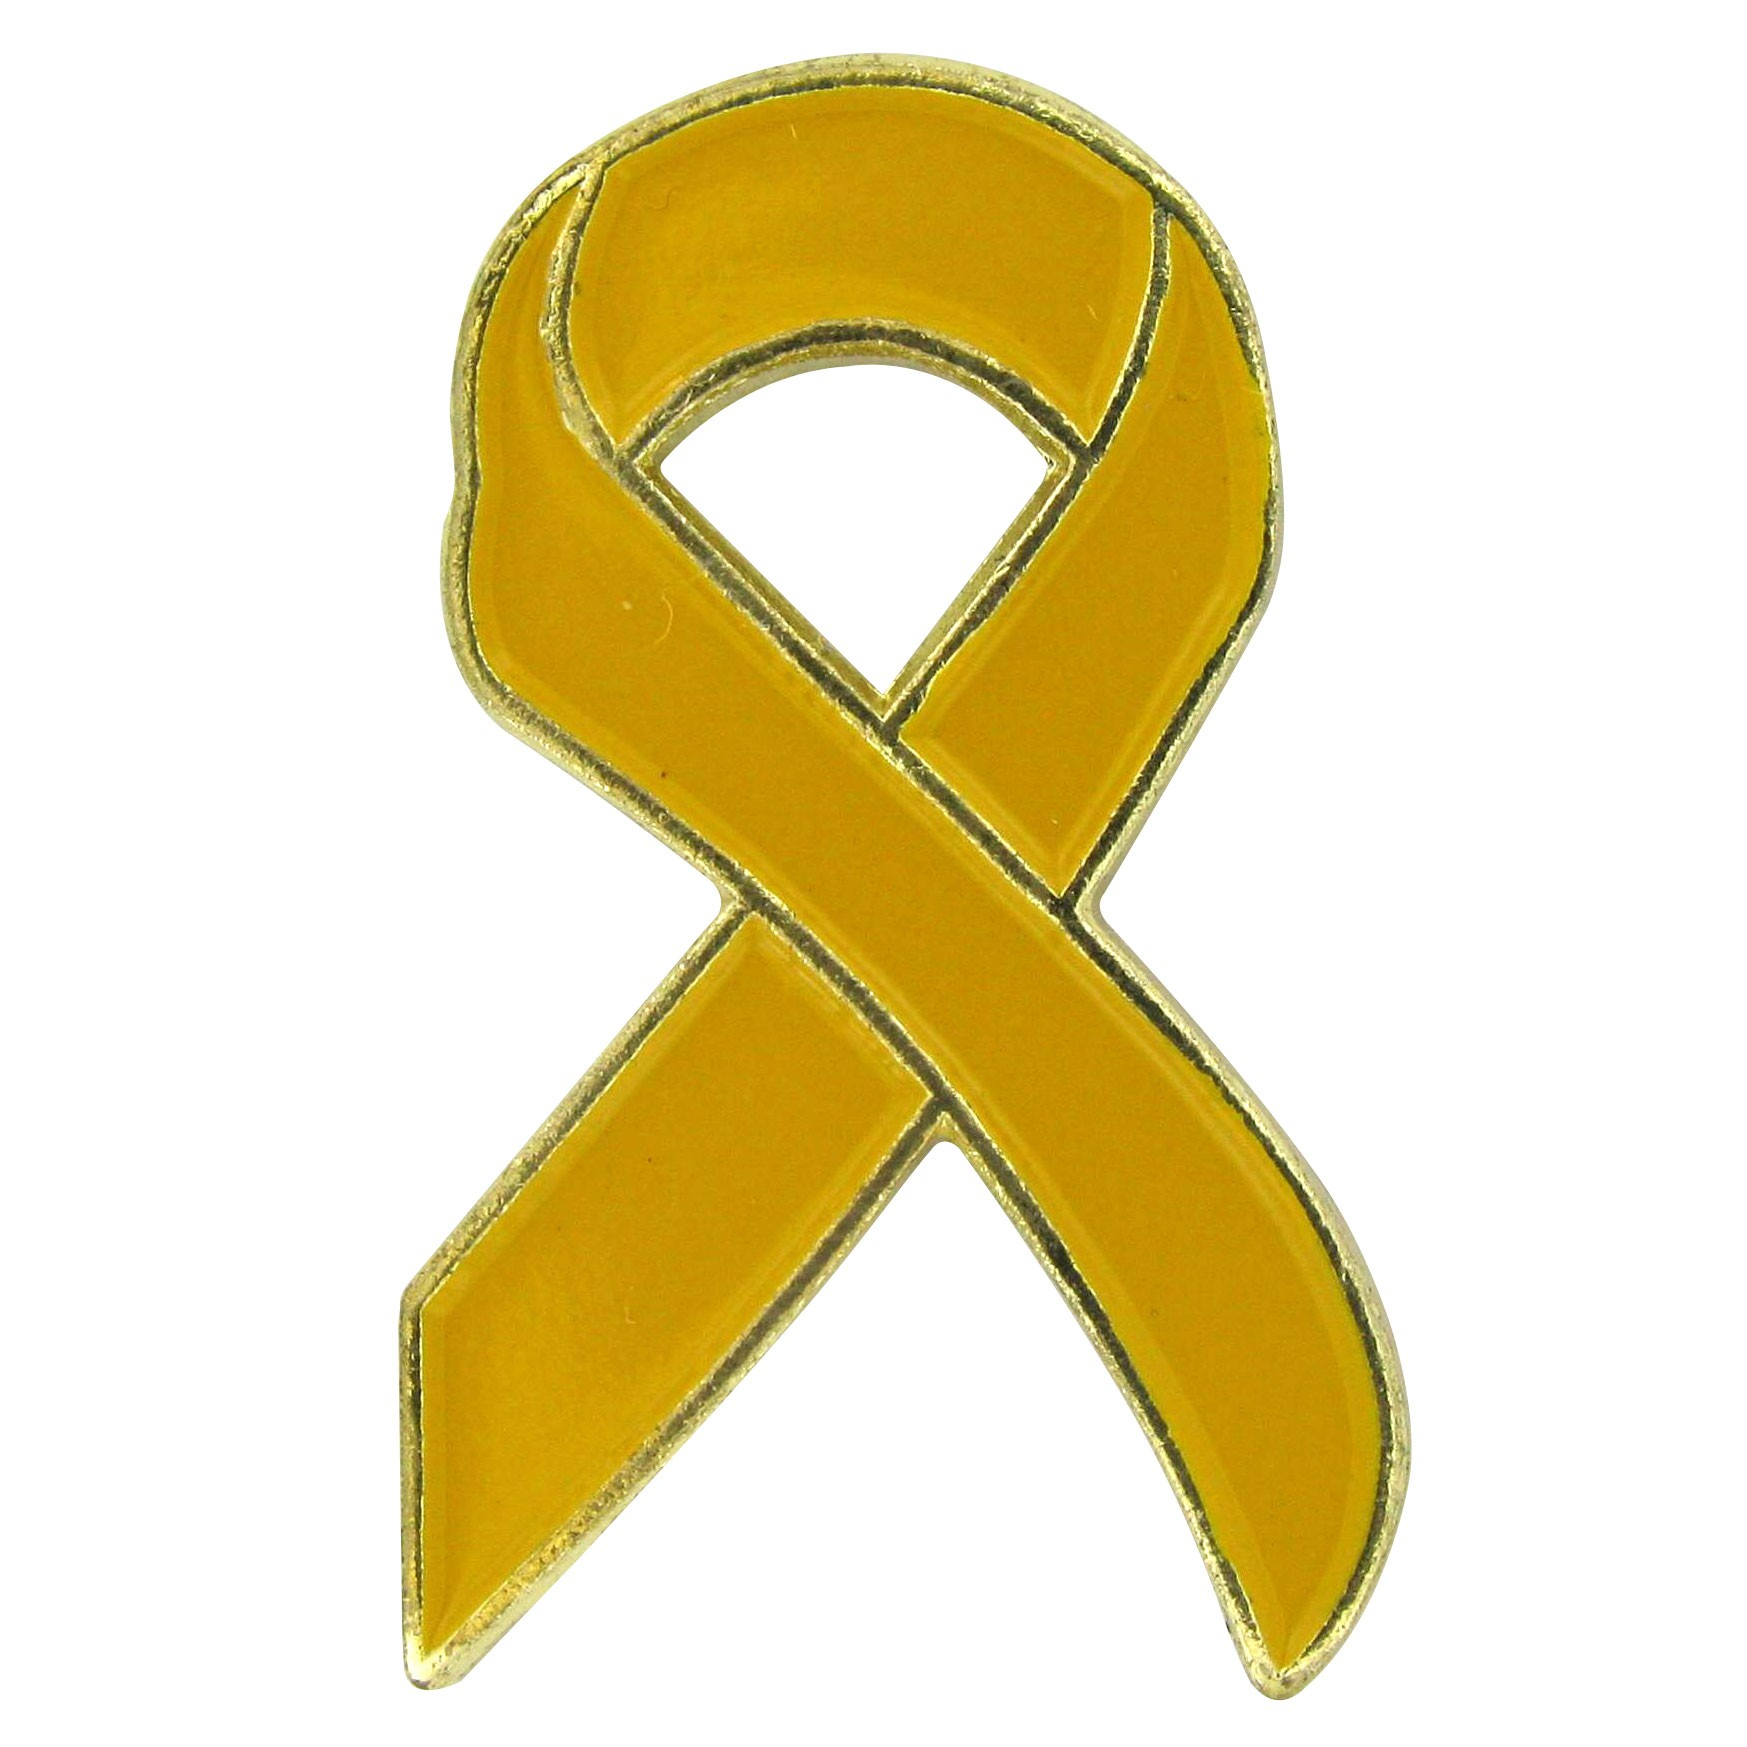 Yellow Ribbon Clip Art.